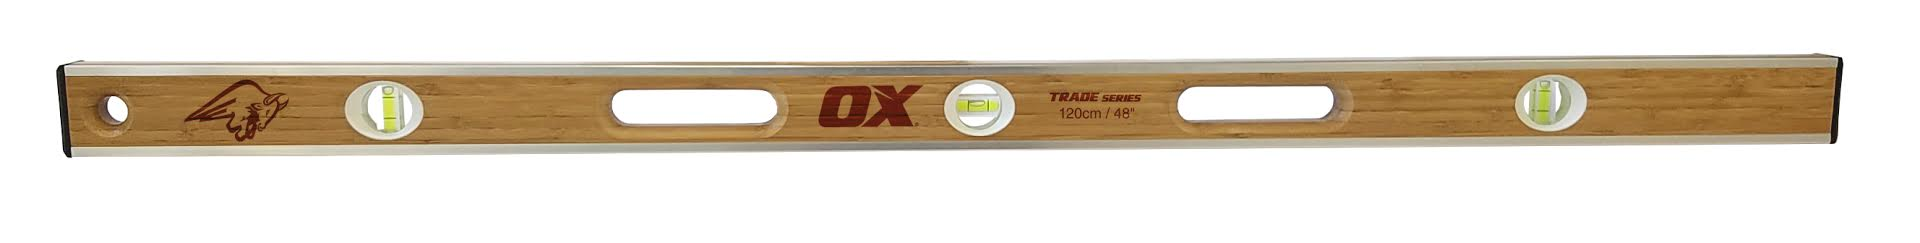 ox-tools-bamboo-level